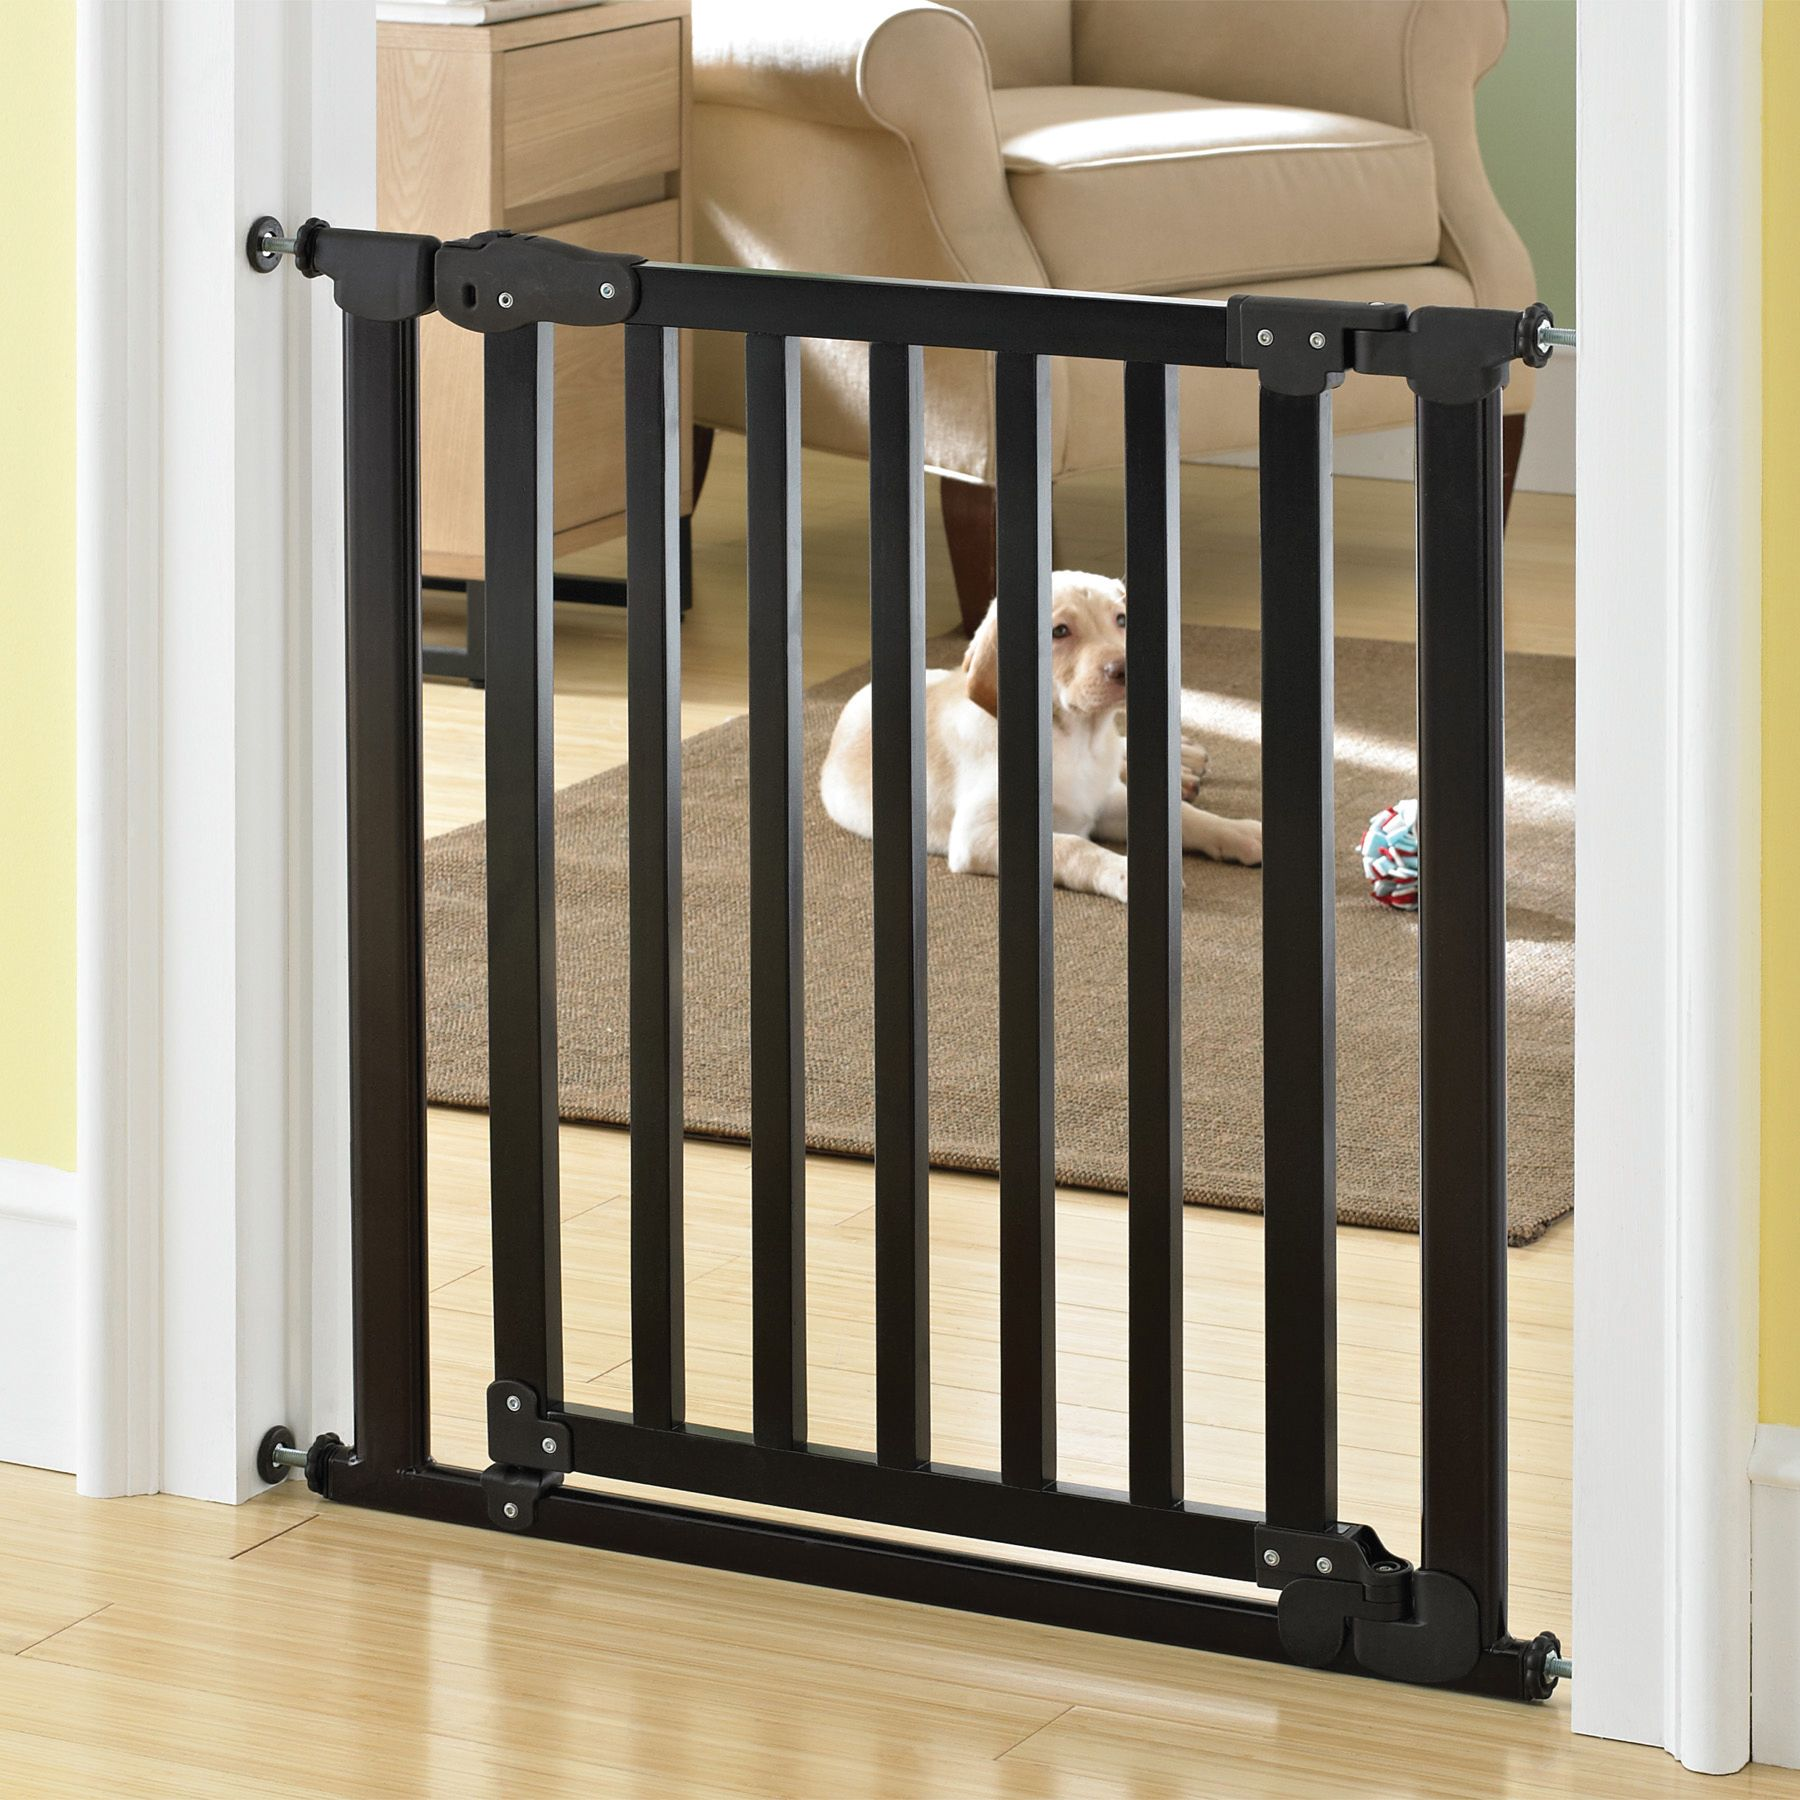 The Martha Stewart Pets Tension Gate Is Perfect For